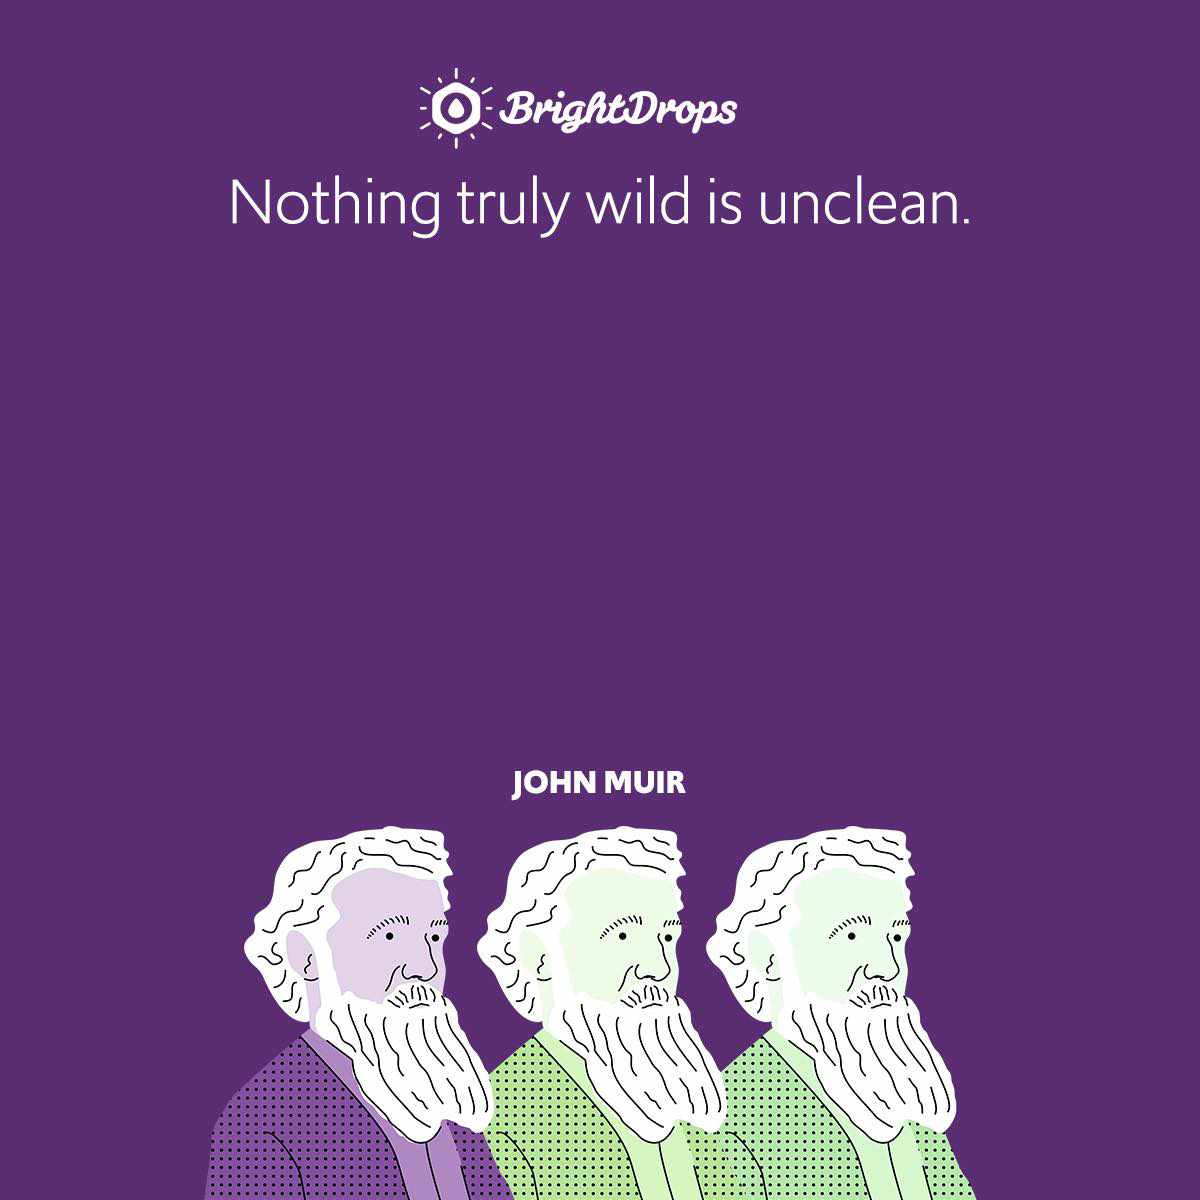 Nothing truly wild is unclean.